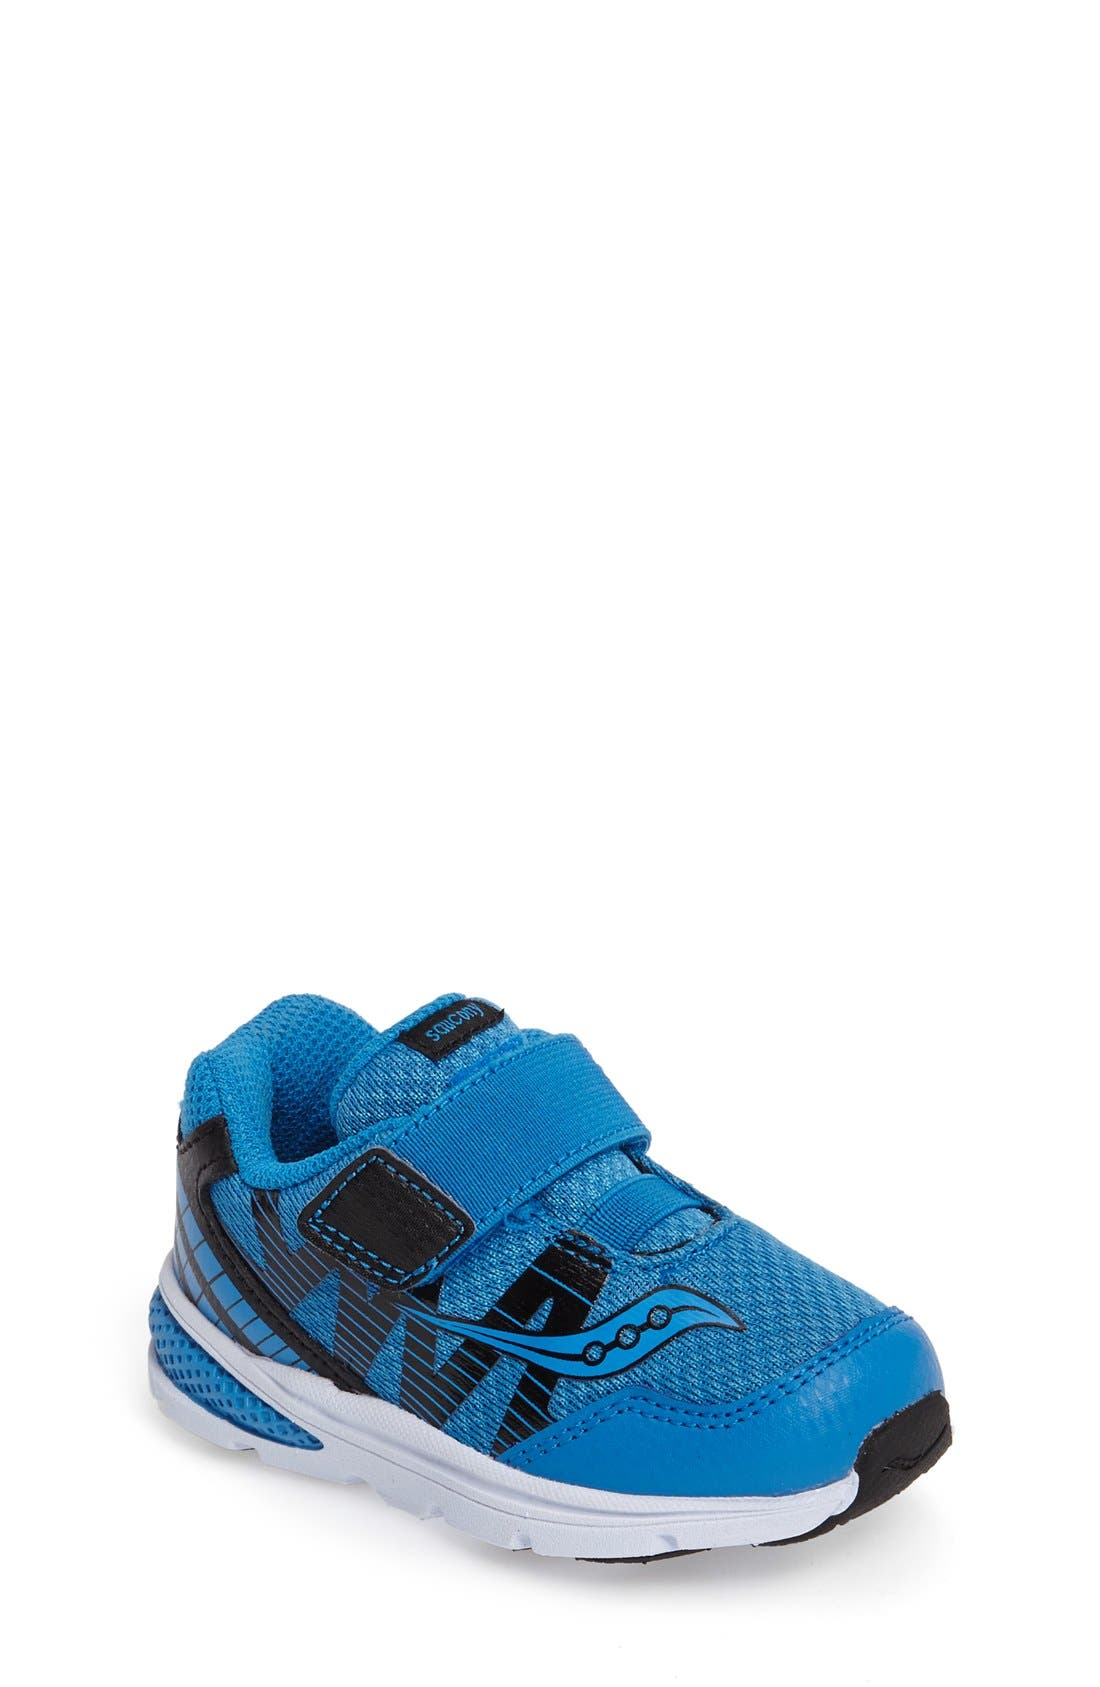 Saucony Baby Ride Pro Sneaker (Baby, Walker & Toddler)